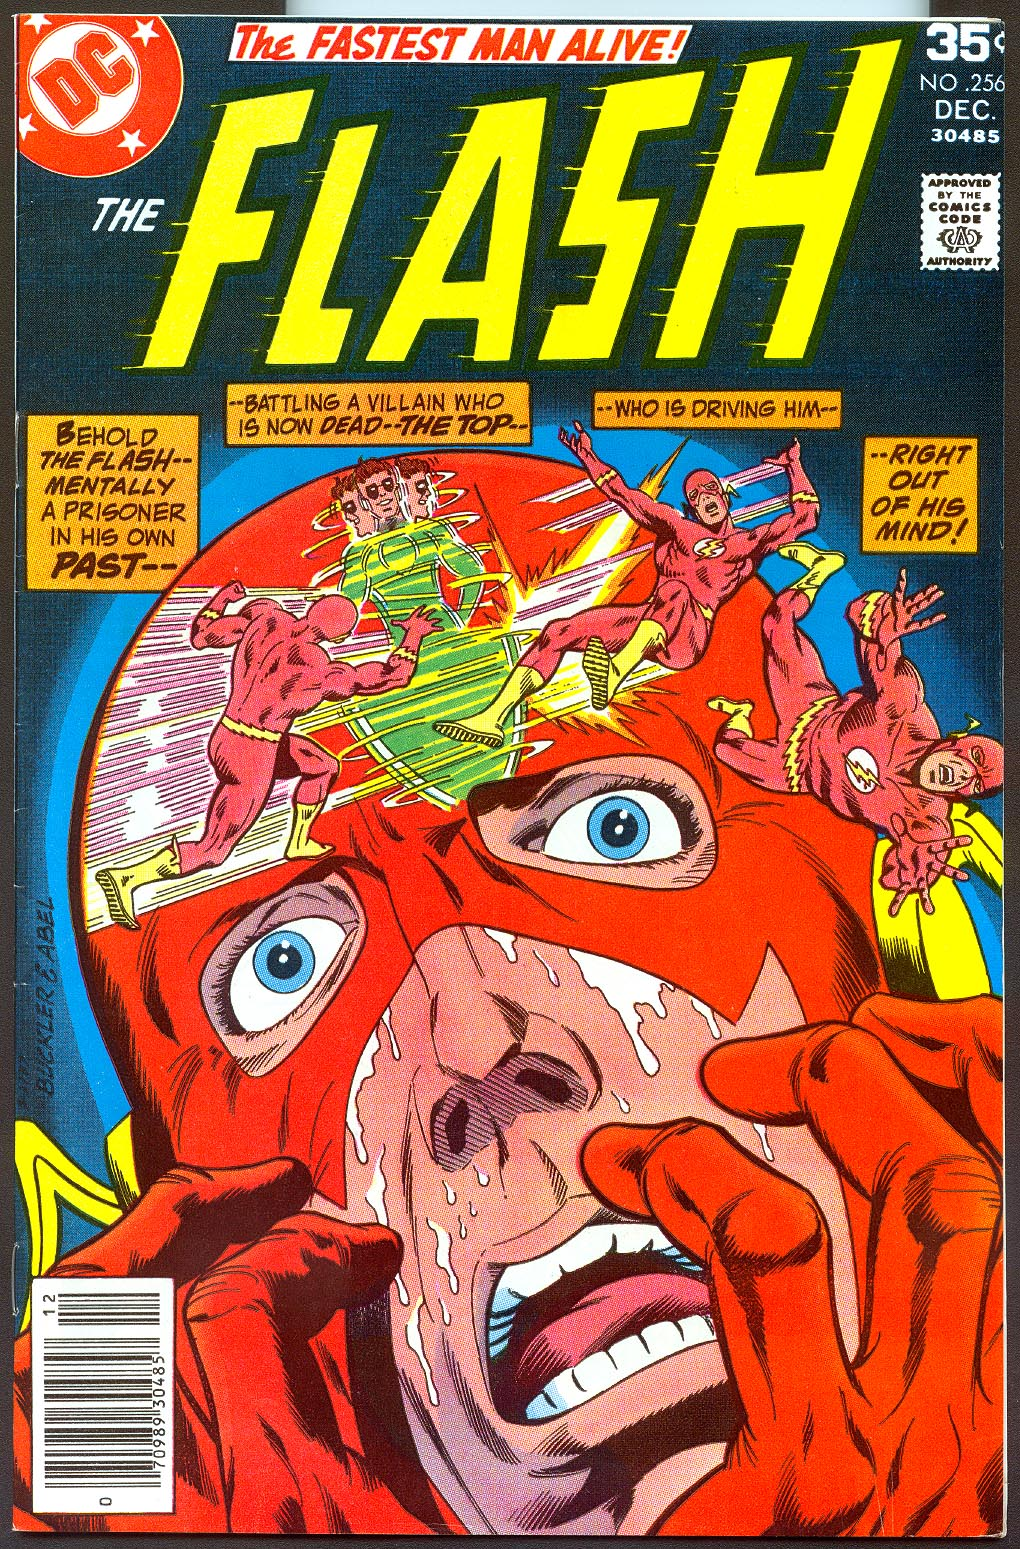 Flash vol 1 - 256 -F